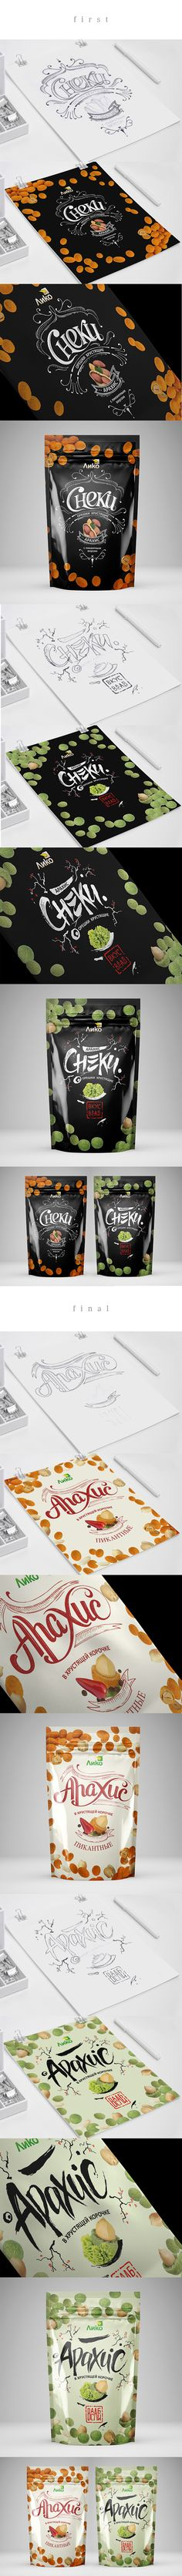 Cheku. Sneck Liko on #Behance love the story behind the composition of this candy #packaging by Wow Design don't you? PD